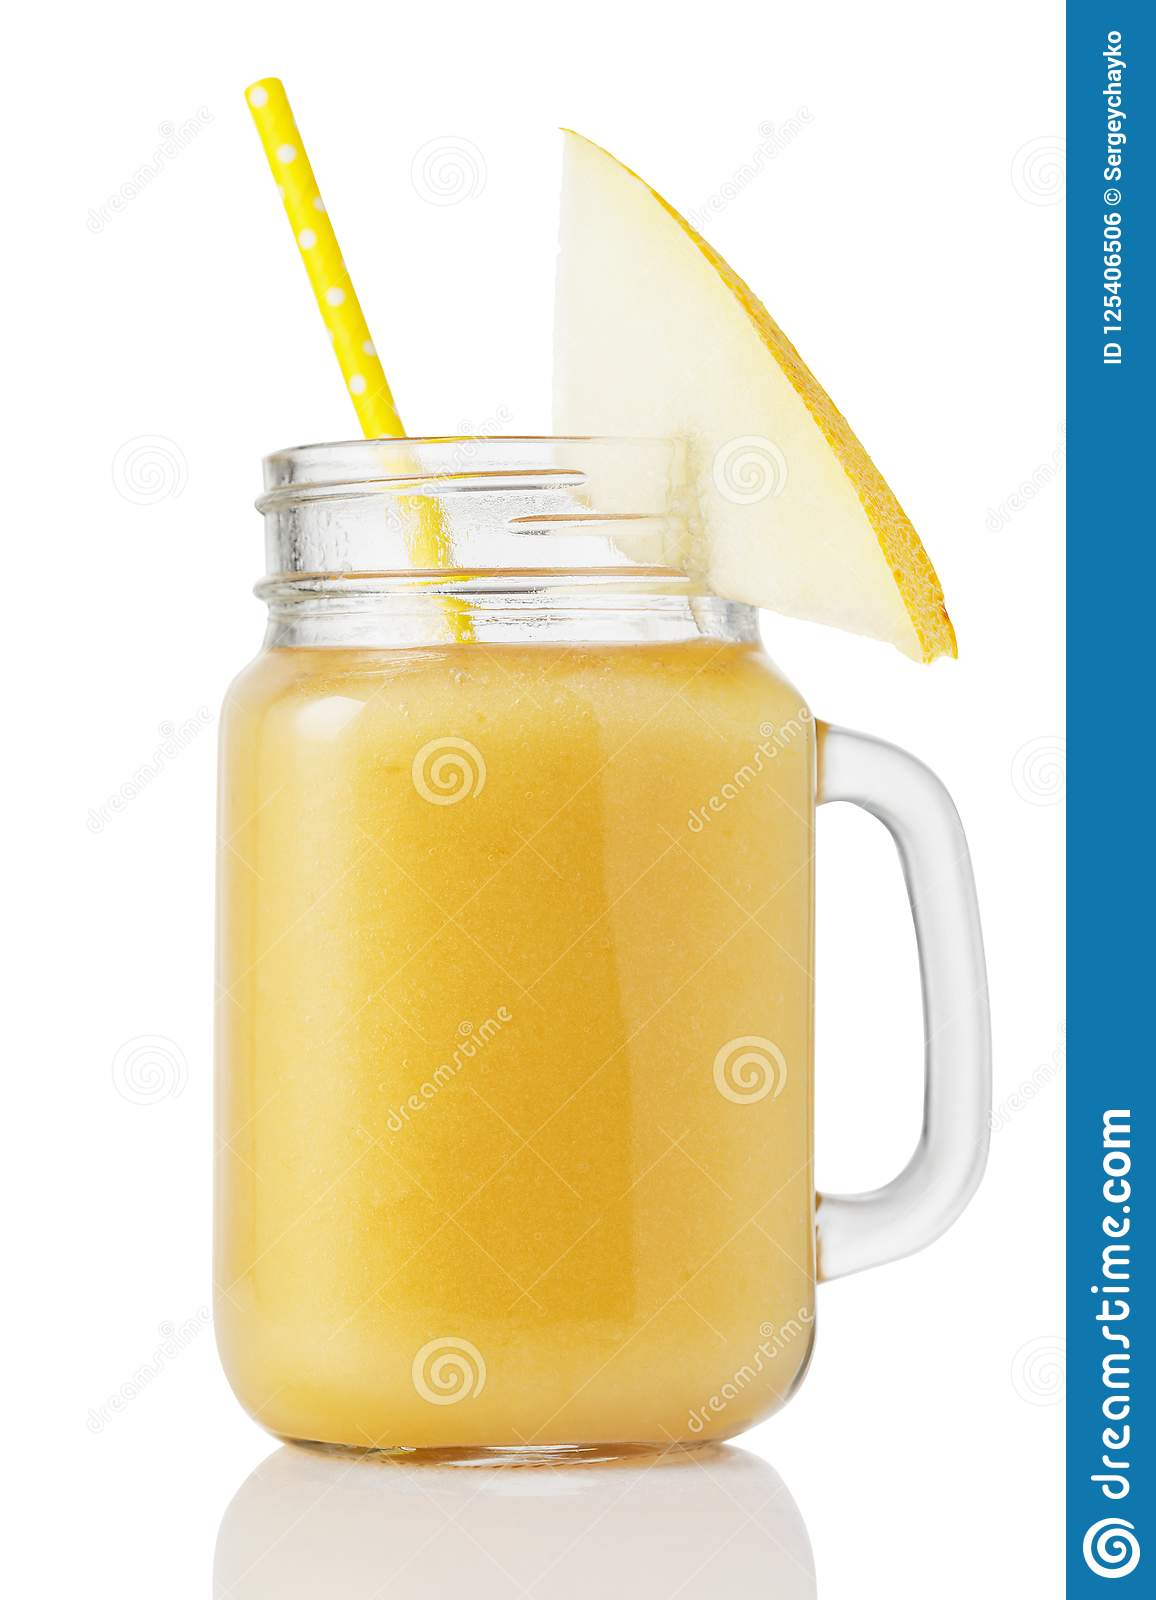 Smoothies in a glass jar, made from pieces of melon, isolated